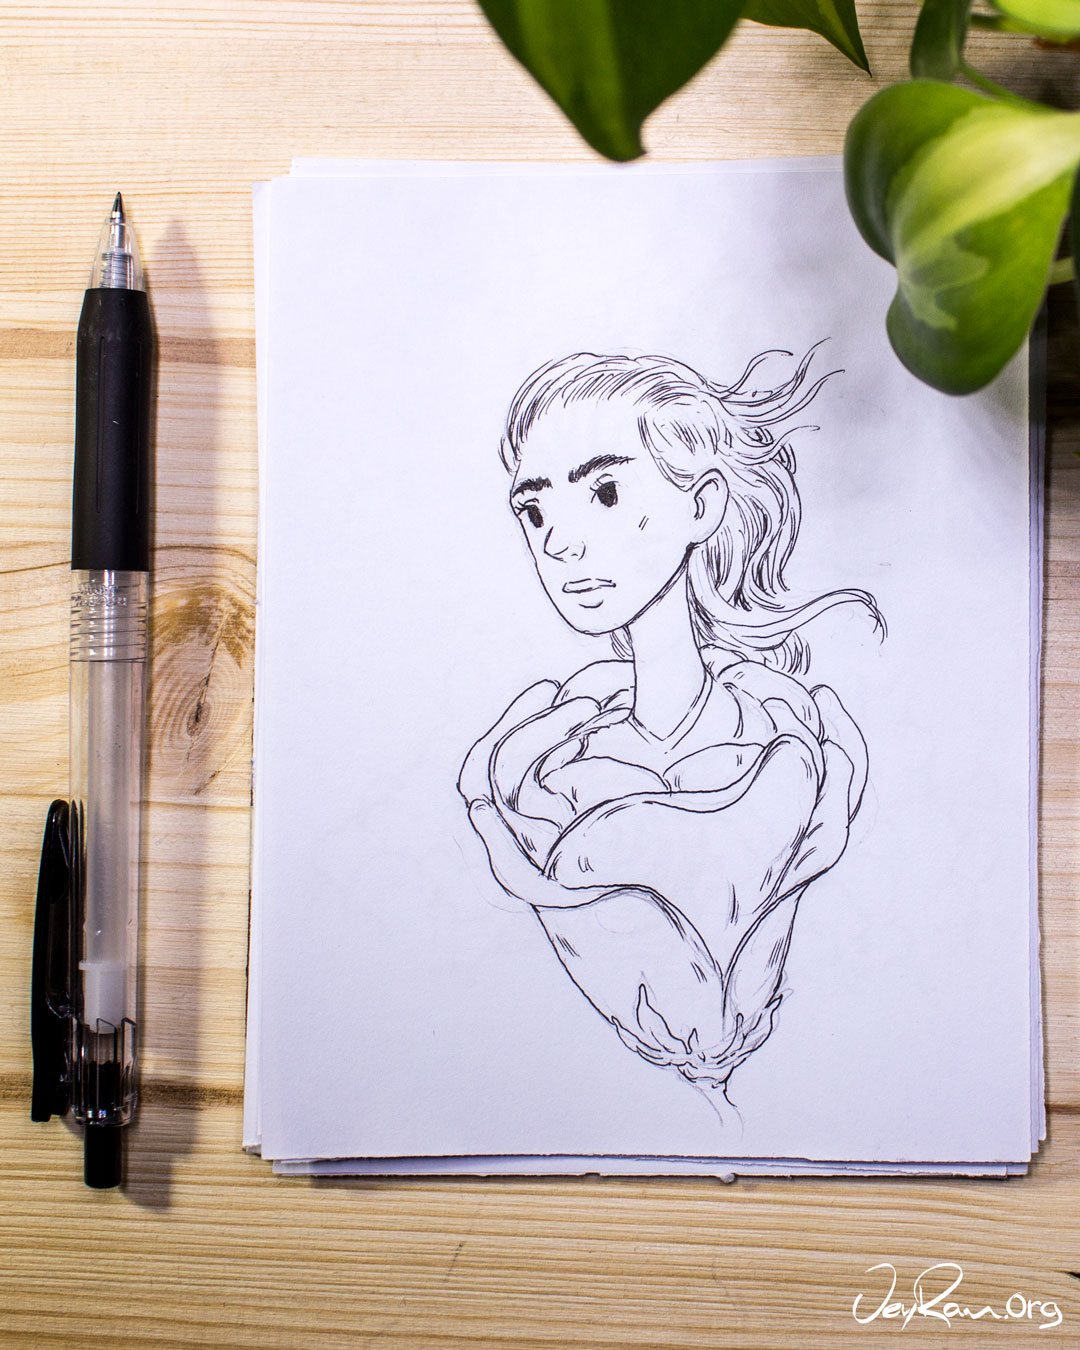 Learn How to Draw Hair with this Video Tutorial by JeyRam #tutorial #howtodraw